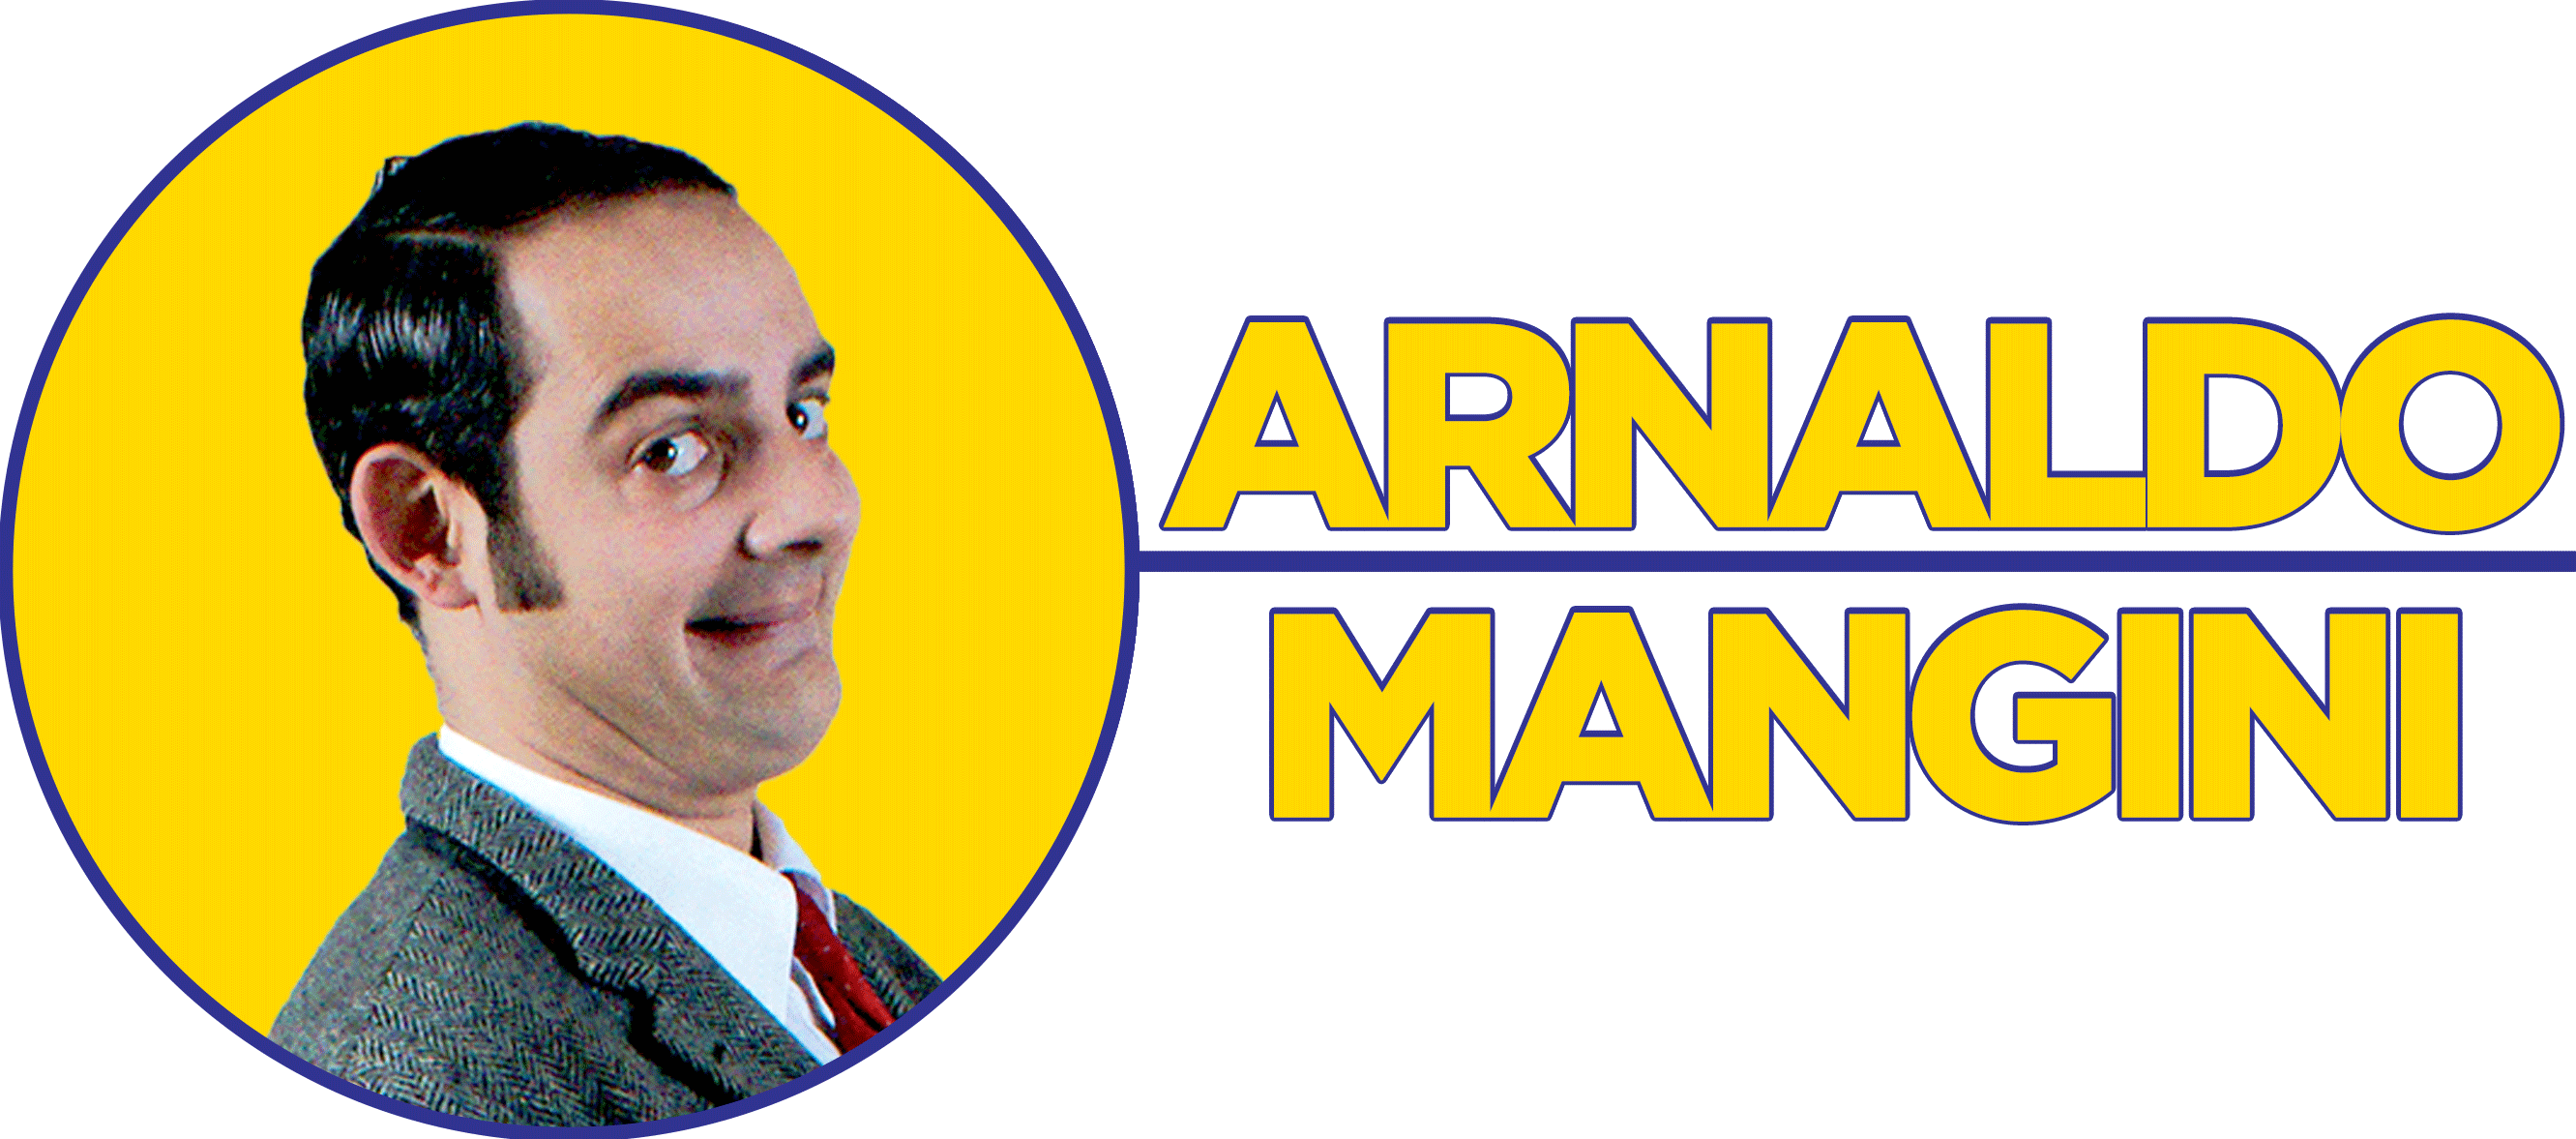 mangini Archivi - Arnaldo Mangini Clown Actor / MrBean Lookalike